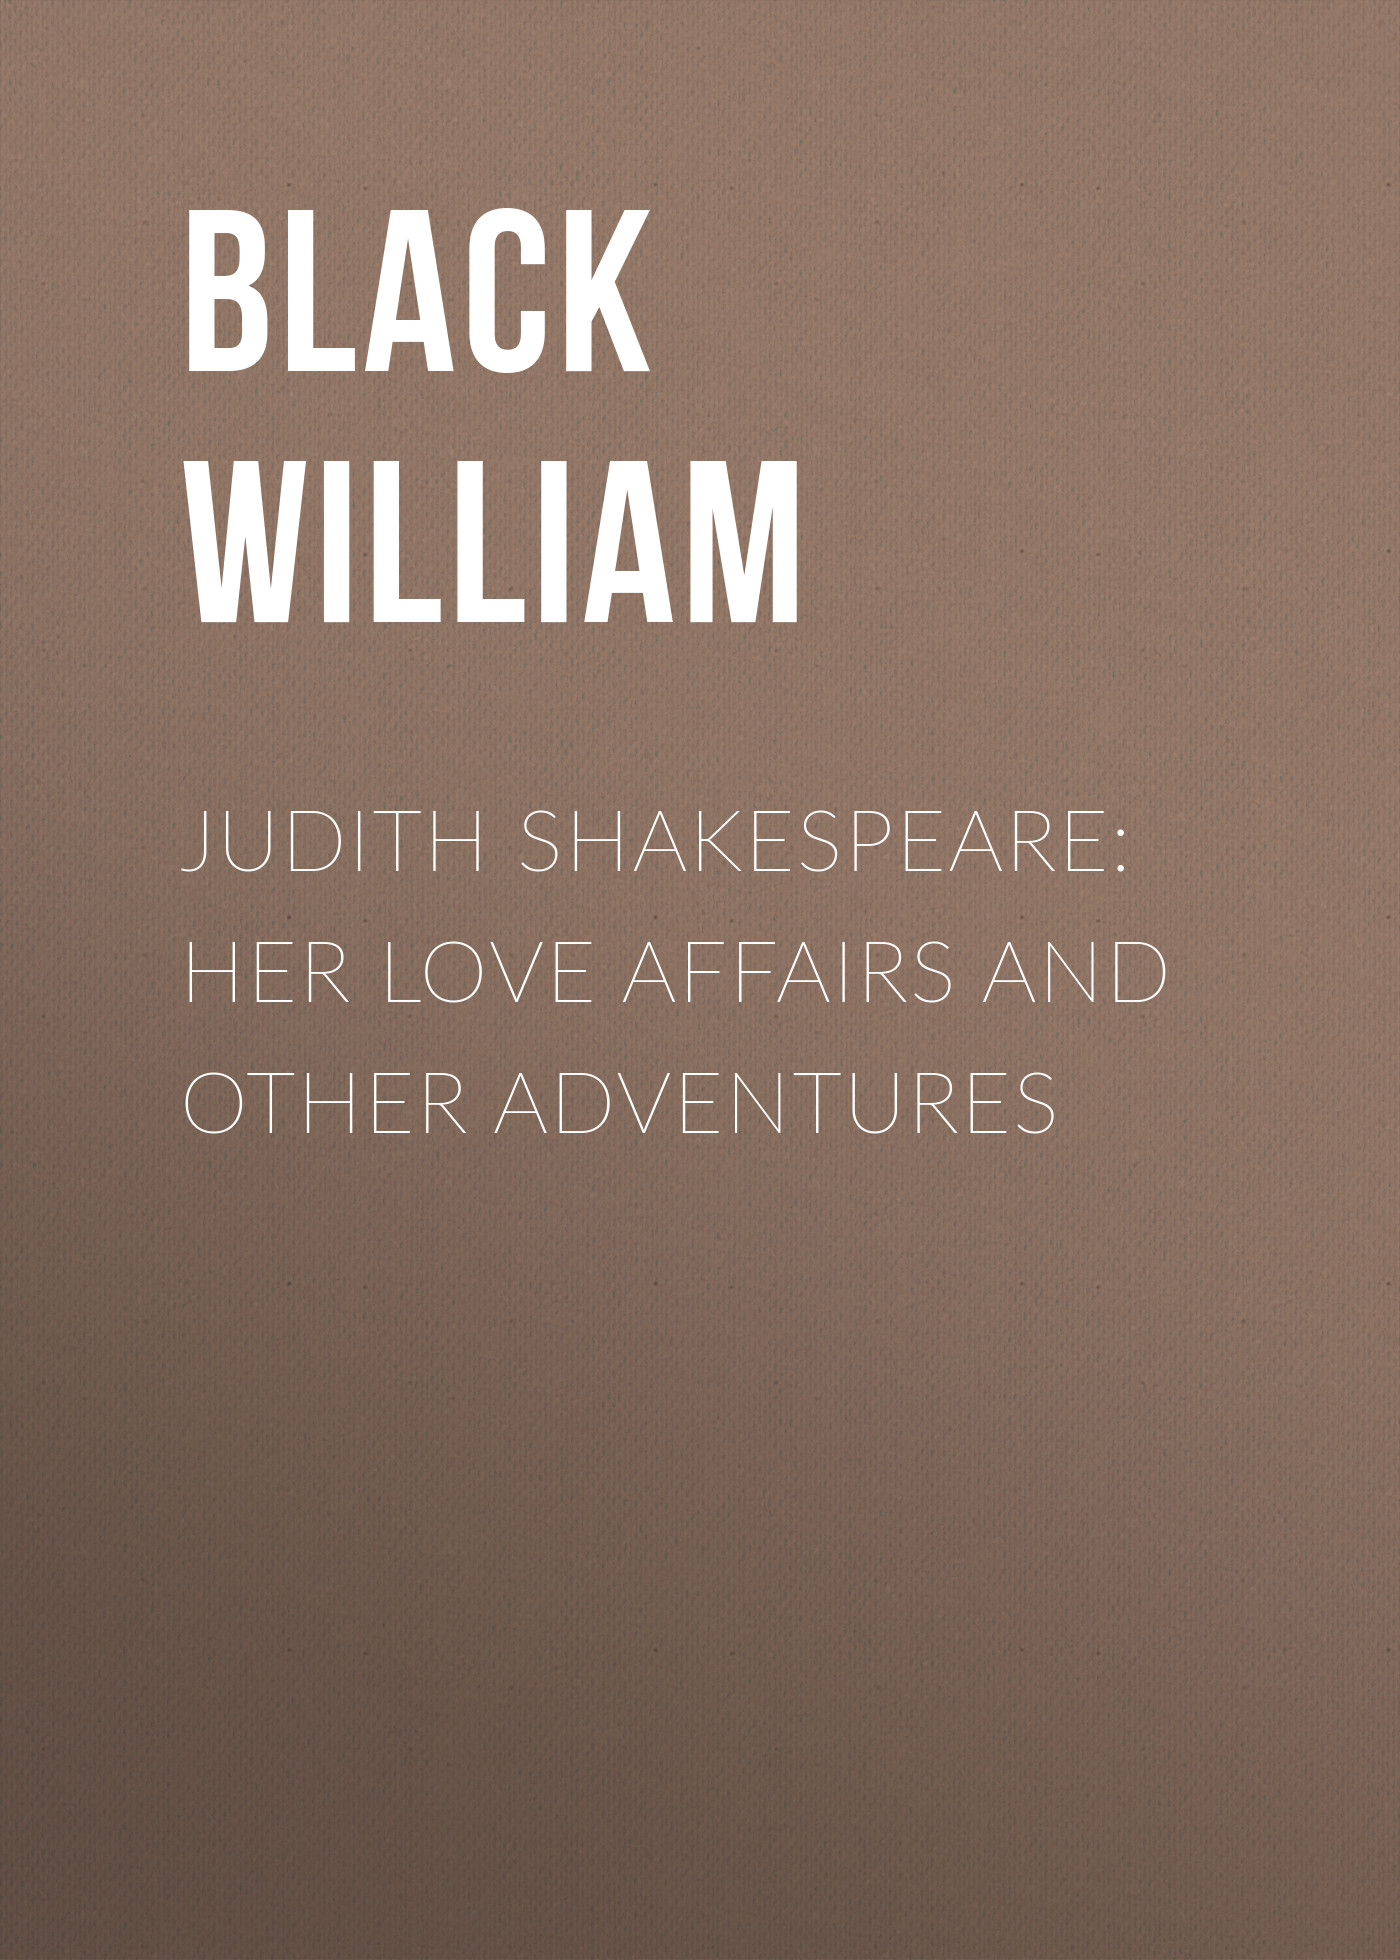 Black William Judith Shakespeare: Her love affairs and other adventures 1more super bass headphones black and red